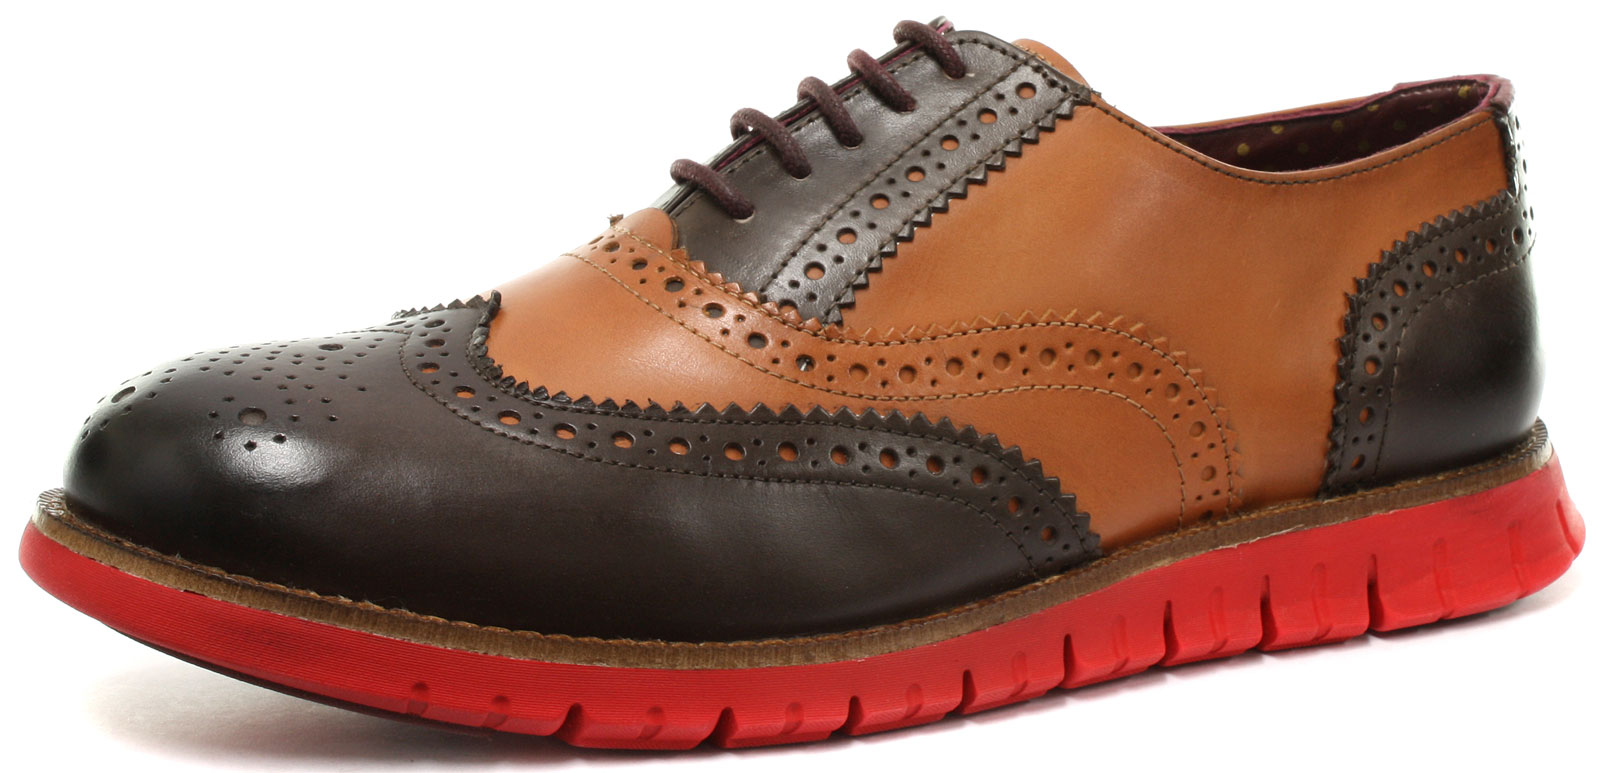 London Brogues Gatz Oxford SIZES Mens Oxford/Brogue Shoes ALL SIZES Oxford AND COLOURS ee7ff8